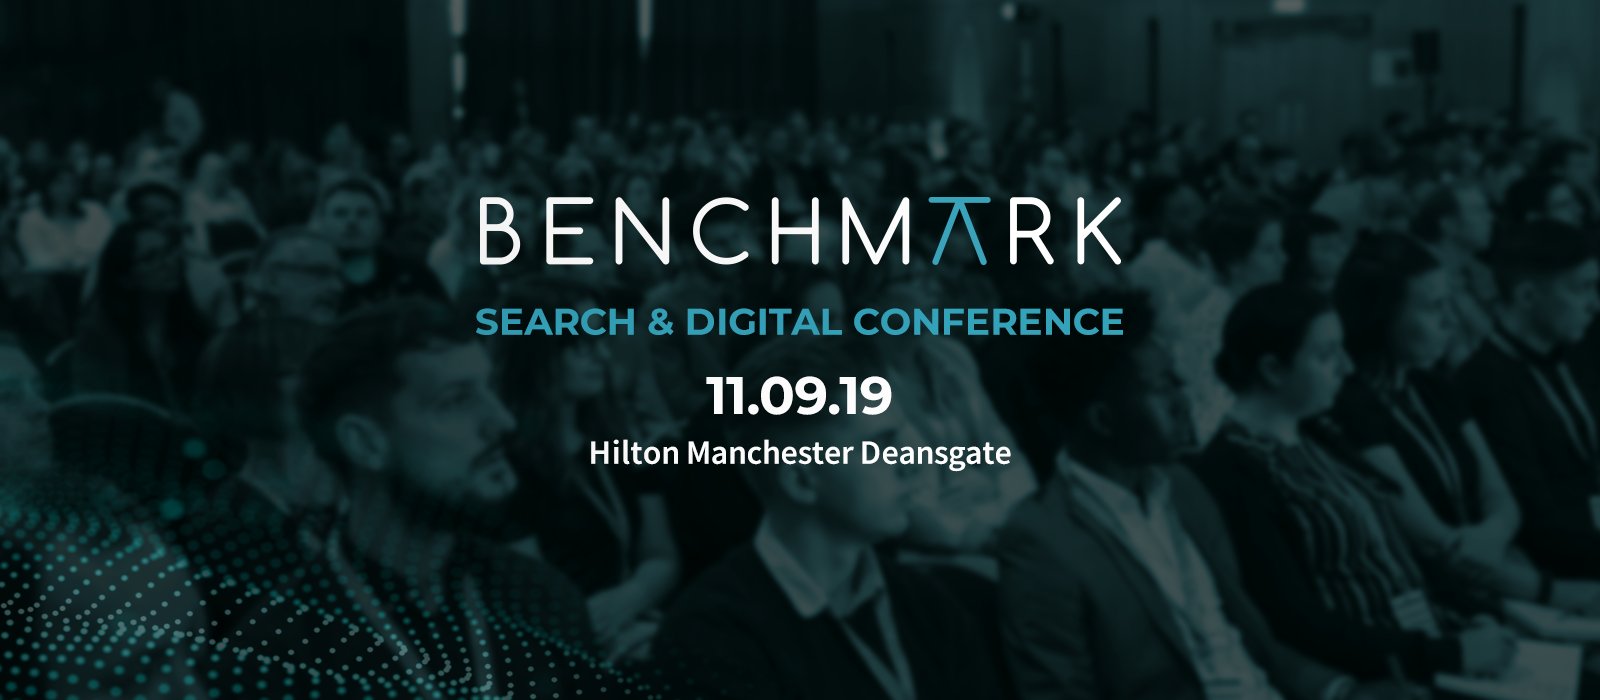 Benchmark Conference 2019